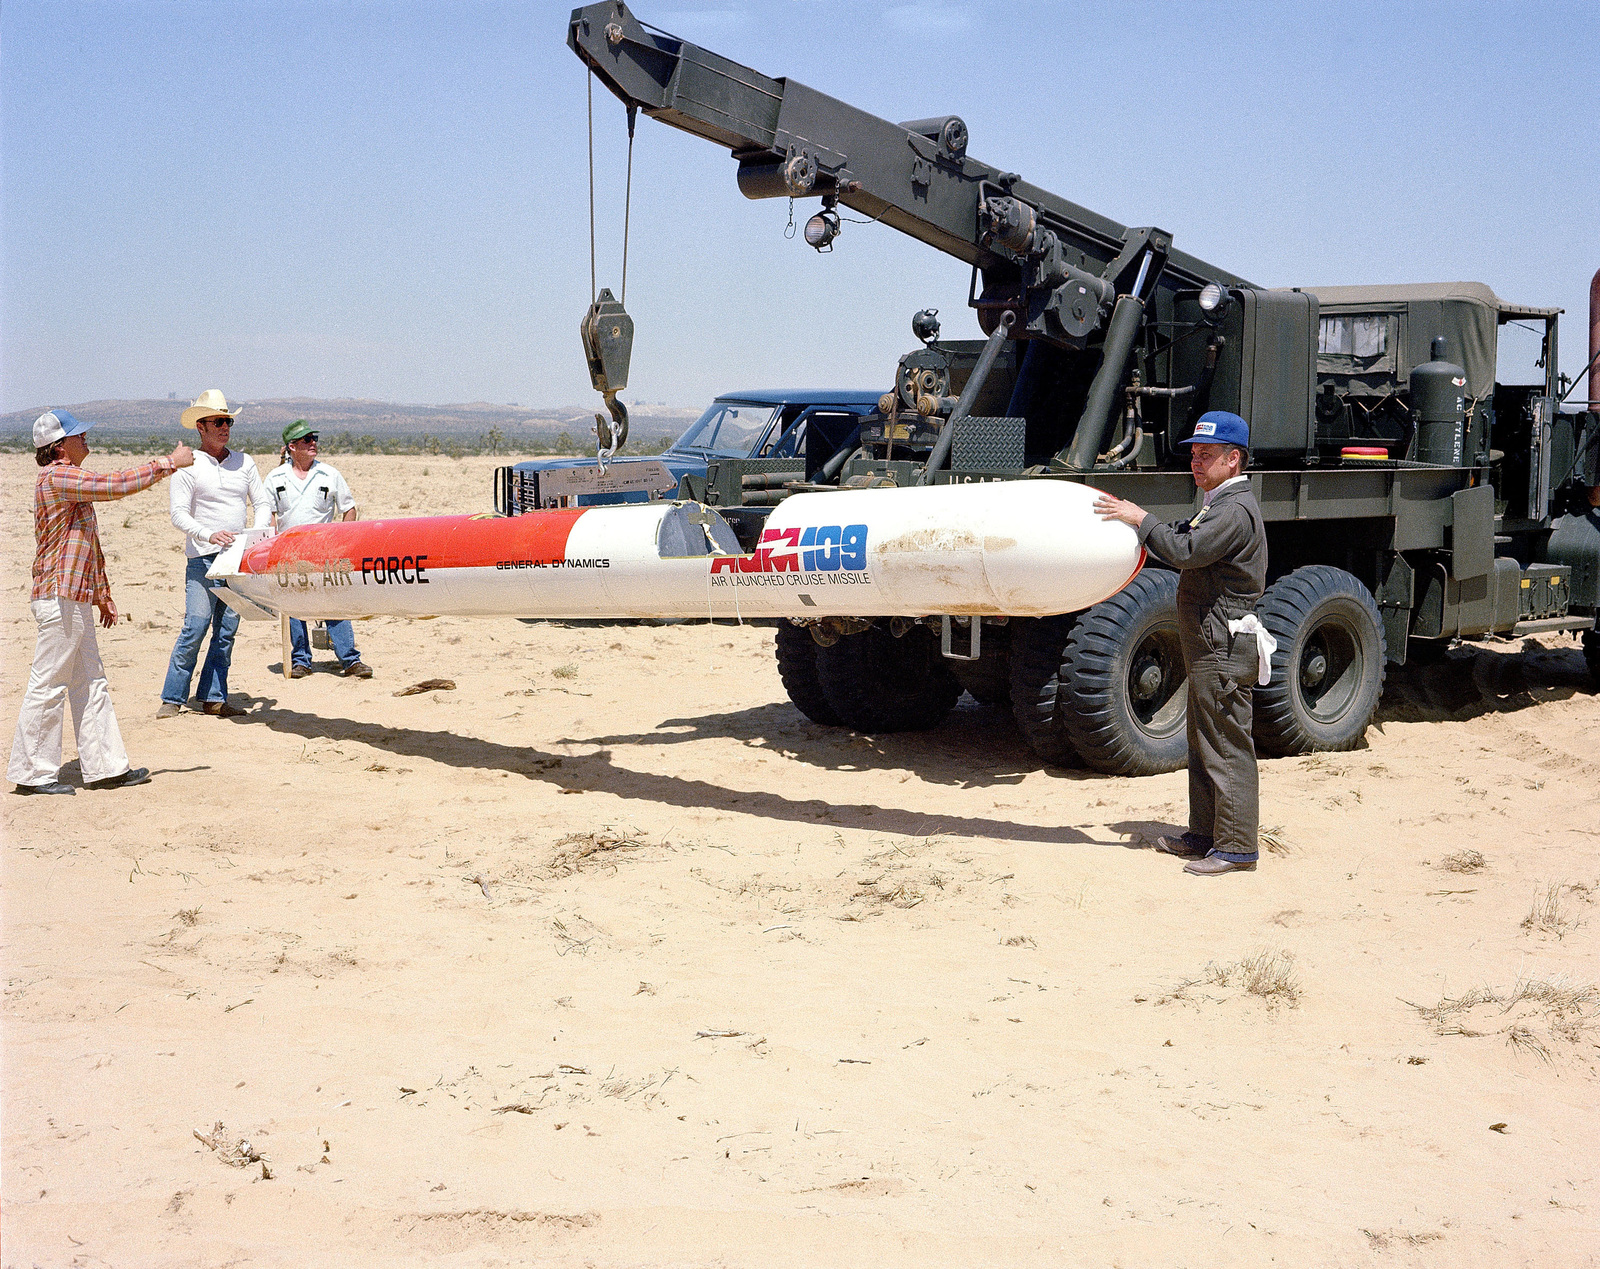 A crew uses a wrecker truck to lift an AGM-109 Tomahawk air